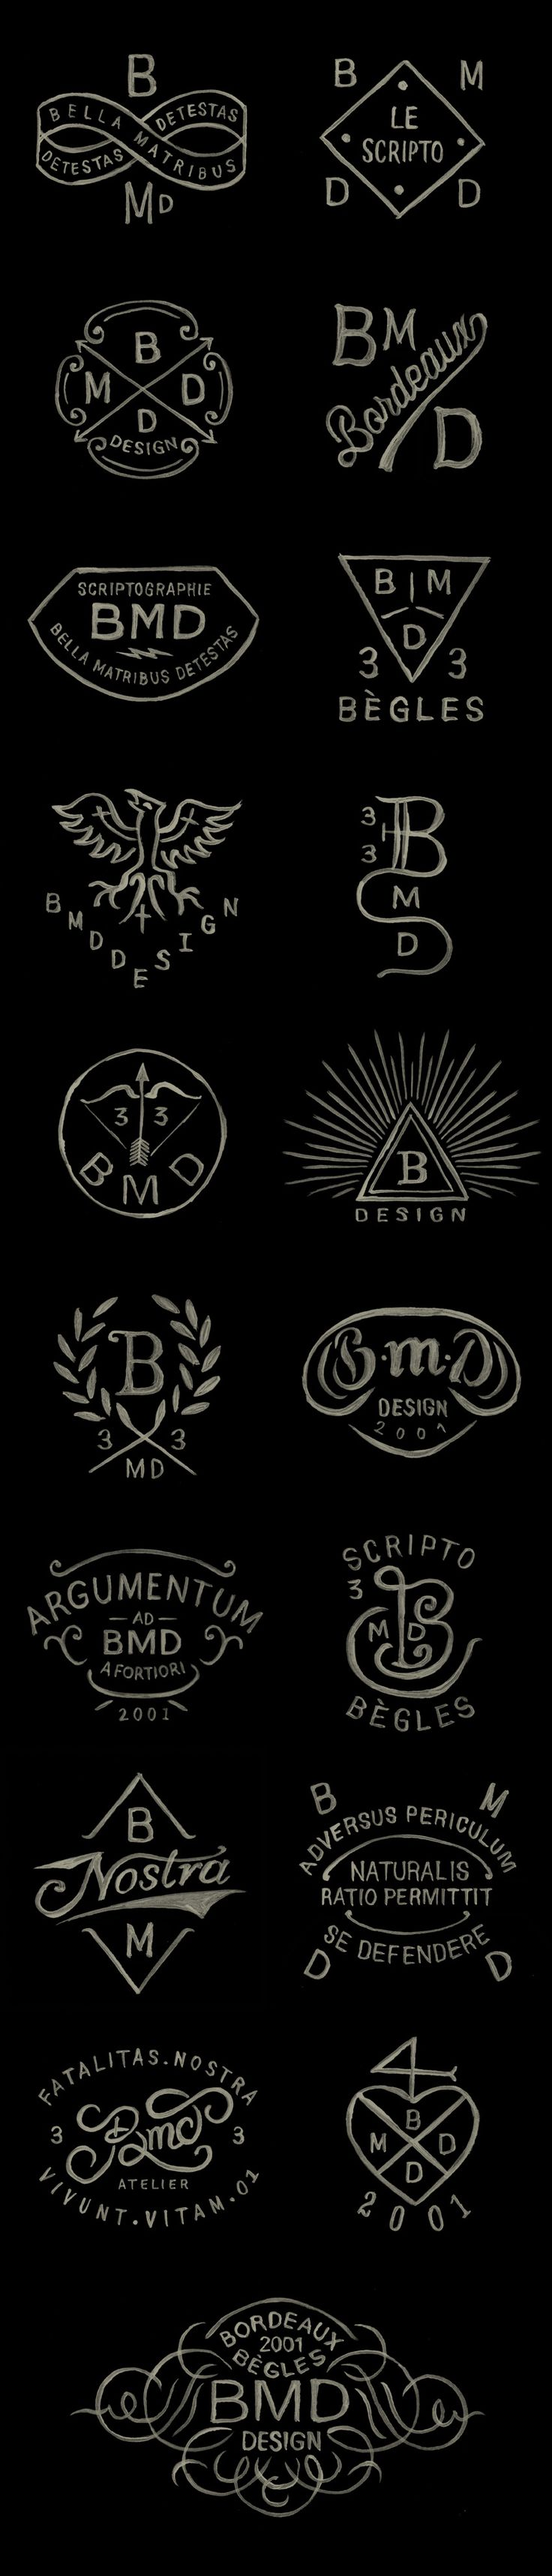 BMD Design logos / Watercolor   www.lab333.com  https://www.facebook.com/pages/LAB-STYLE/585086788169863  http://www.labs333style.com  www.lablikes.tumblr.com  www.pinterest.com/labstyle